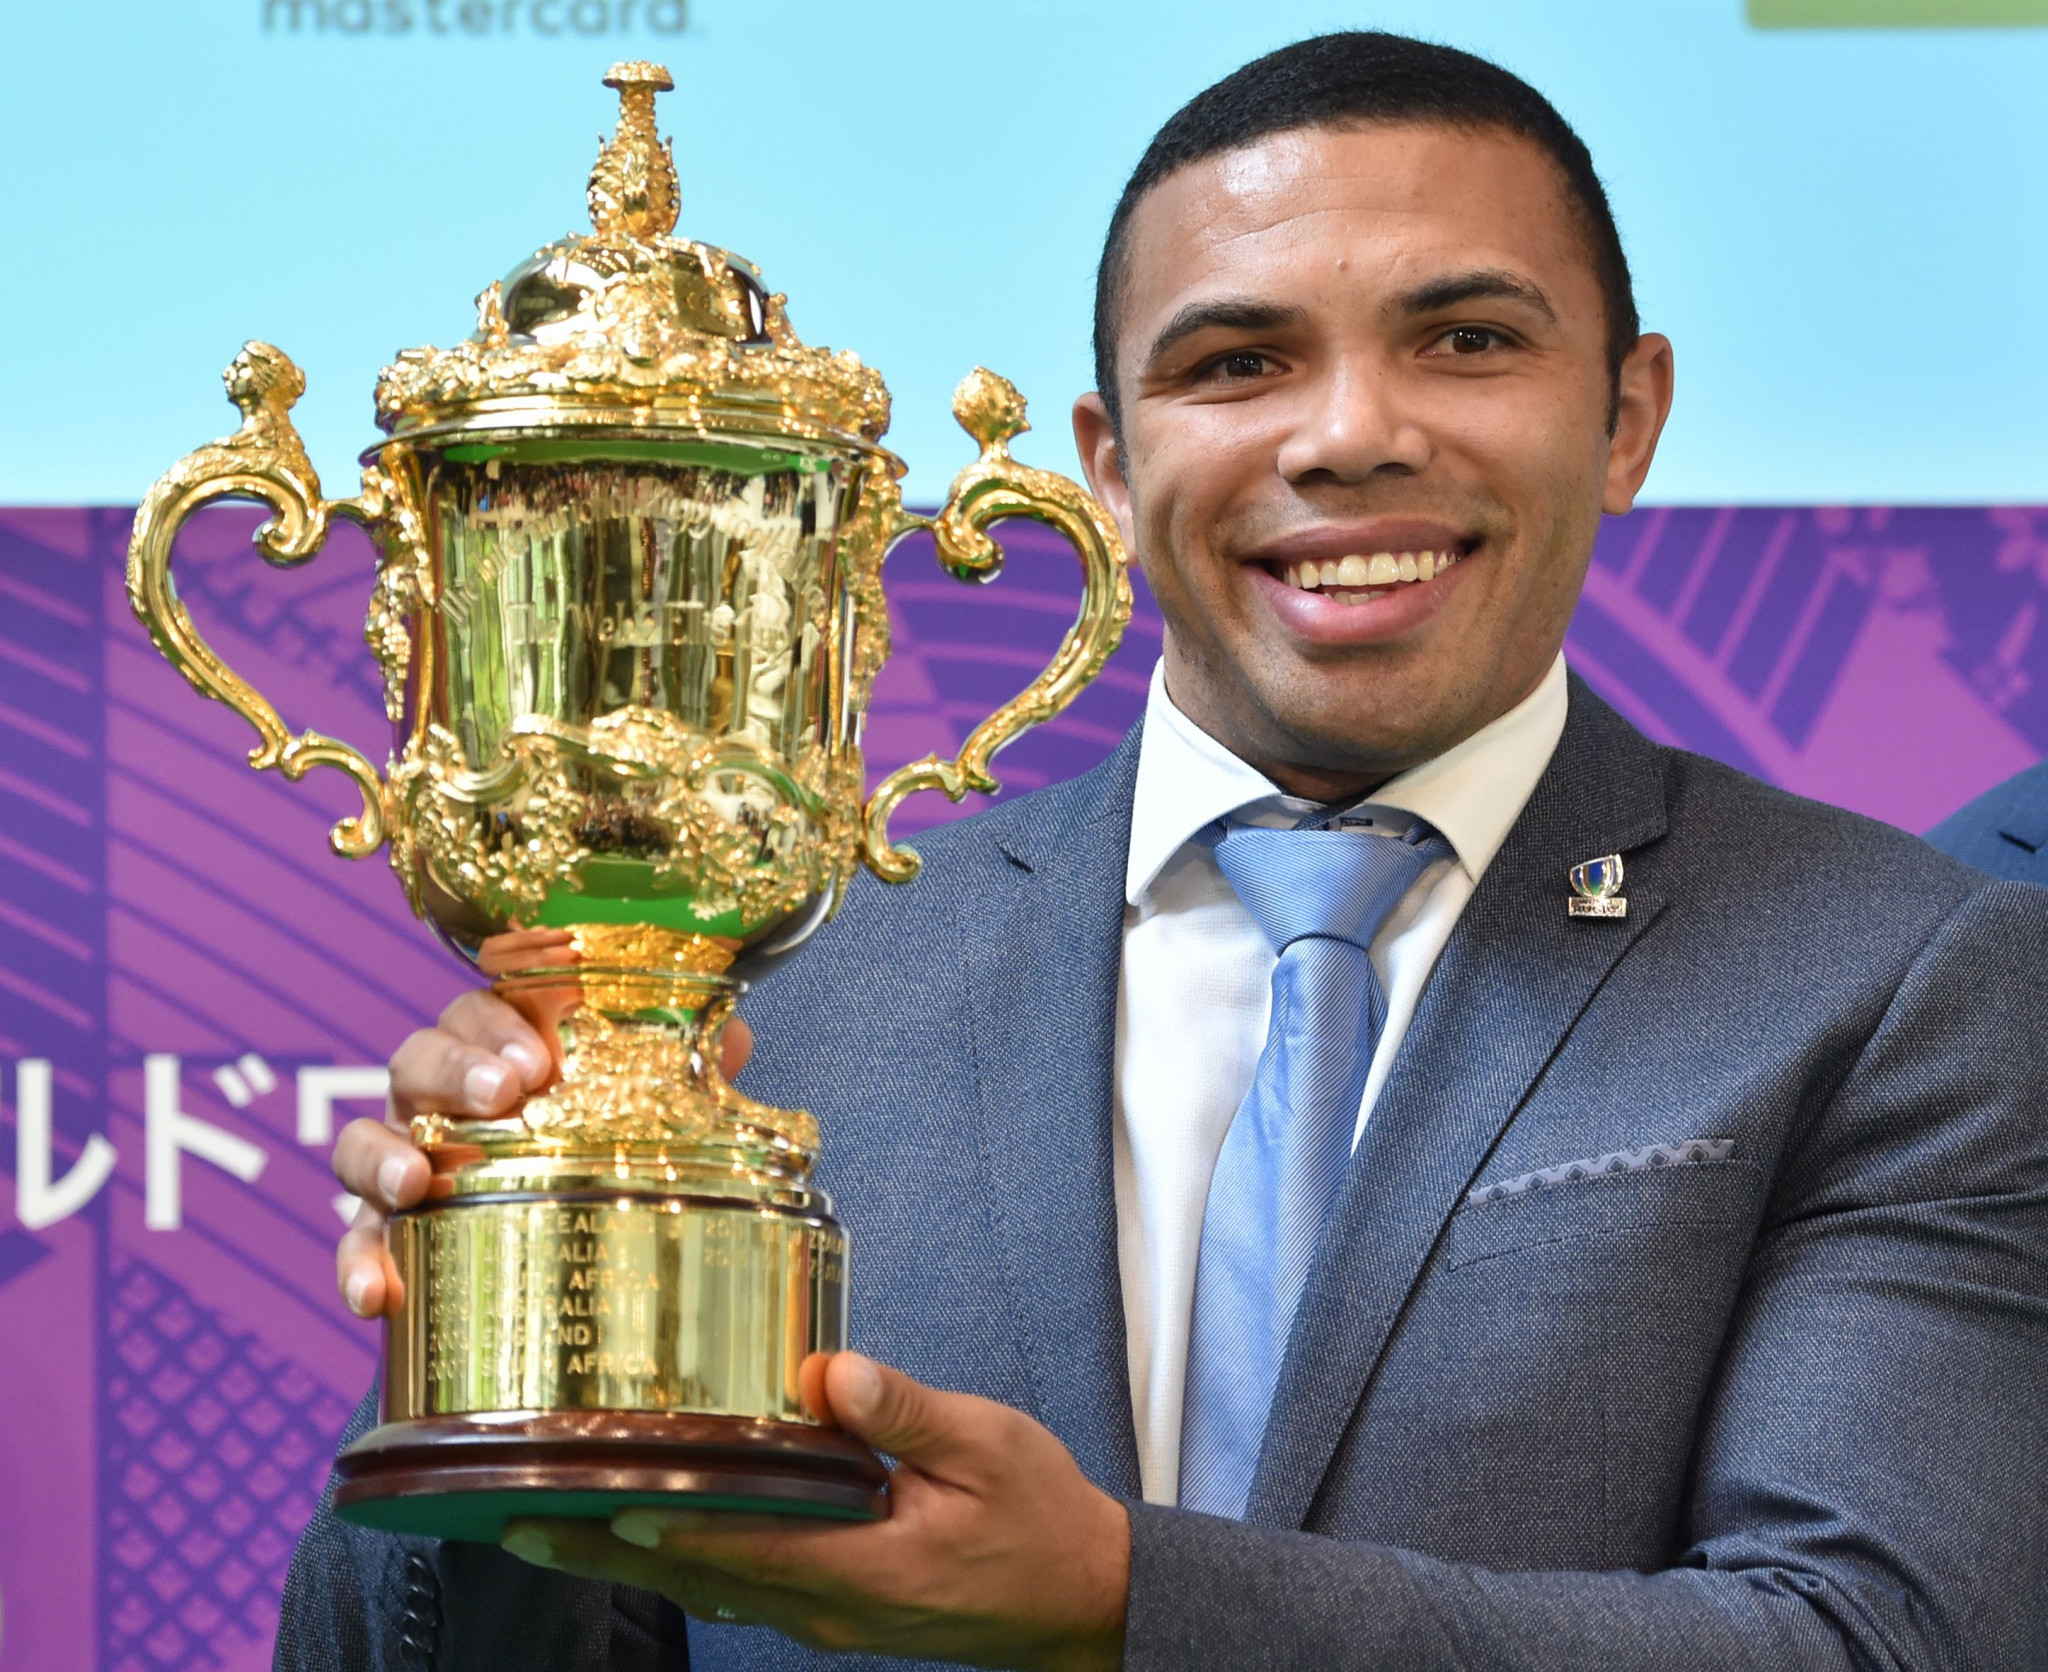 The Rugby World Cup trophy has begun a tour of Japan to mark 100 days to go until the start of the 2019 tournament ©Getty Images